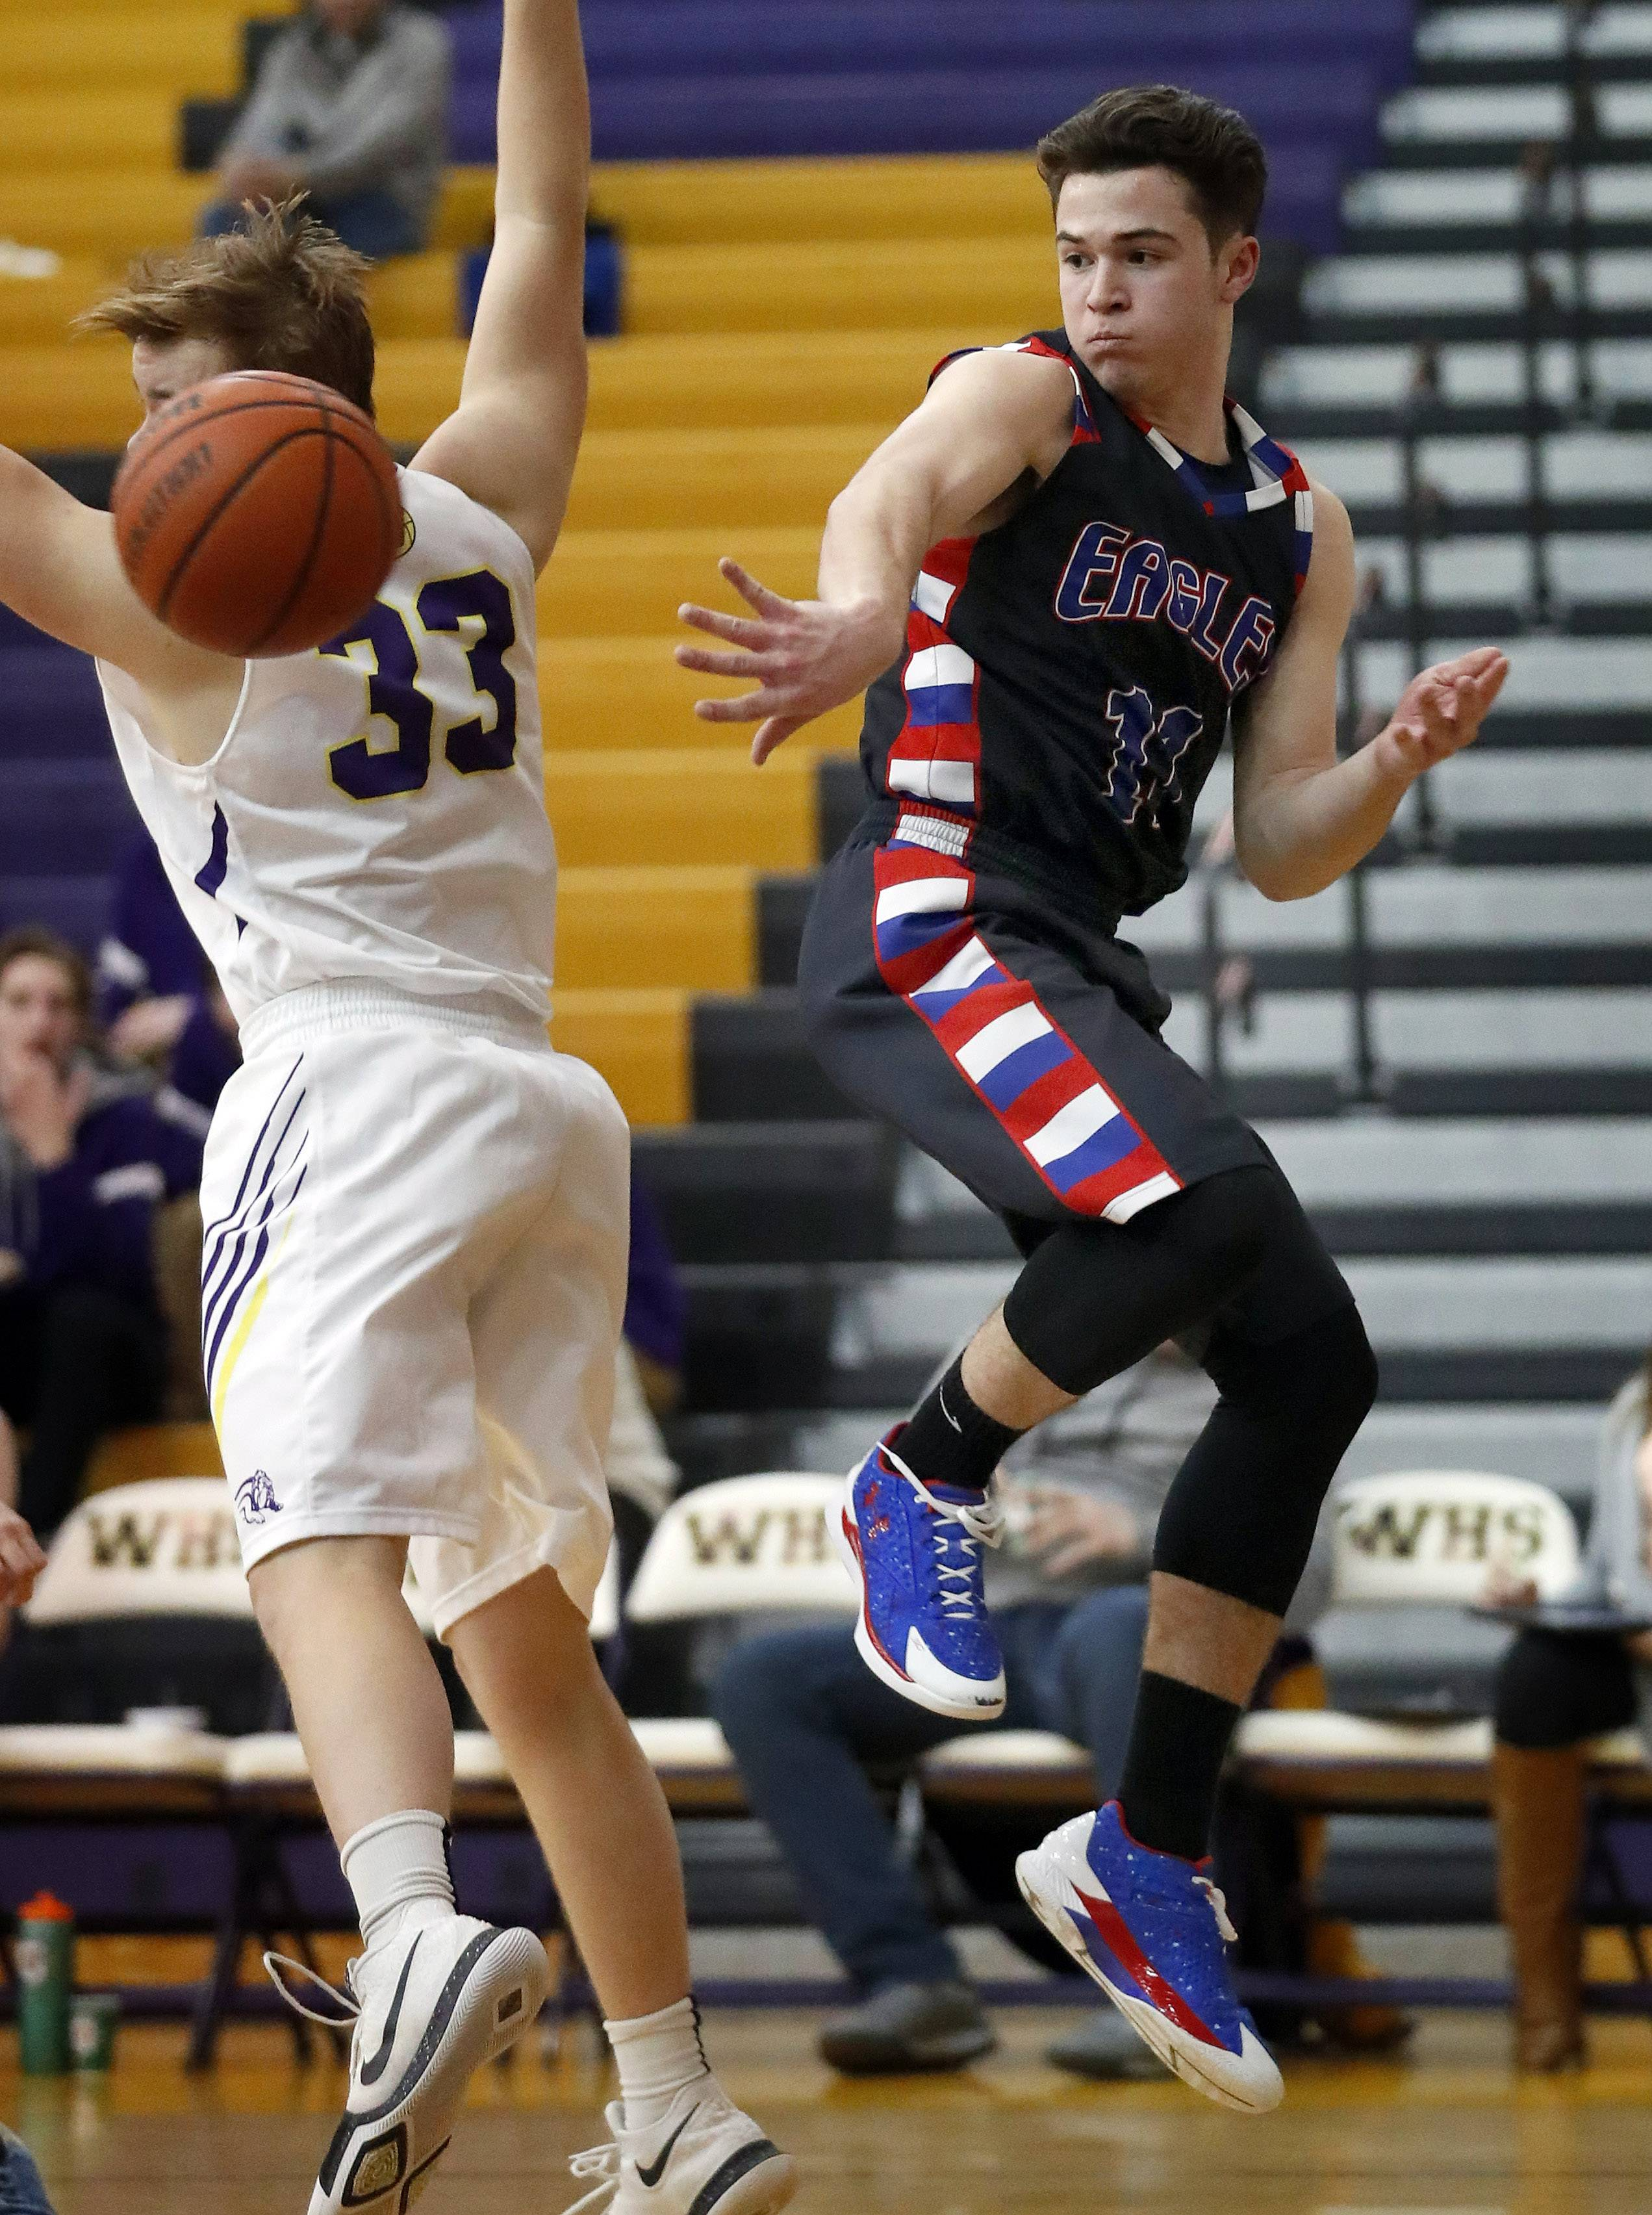 Lakes' Michael Behrendt, right, dishes the ball off around Wauconda's Andrew Nolan on Tuesday night in Wauconda.